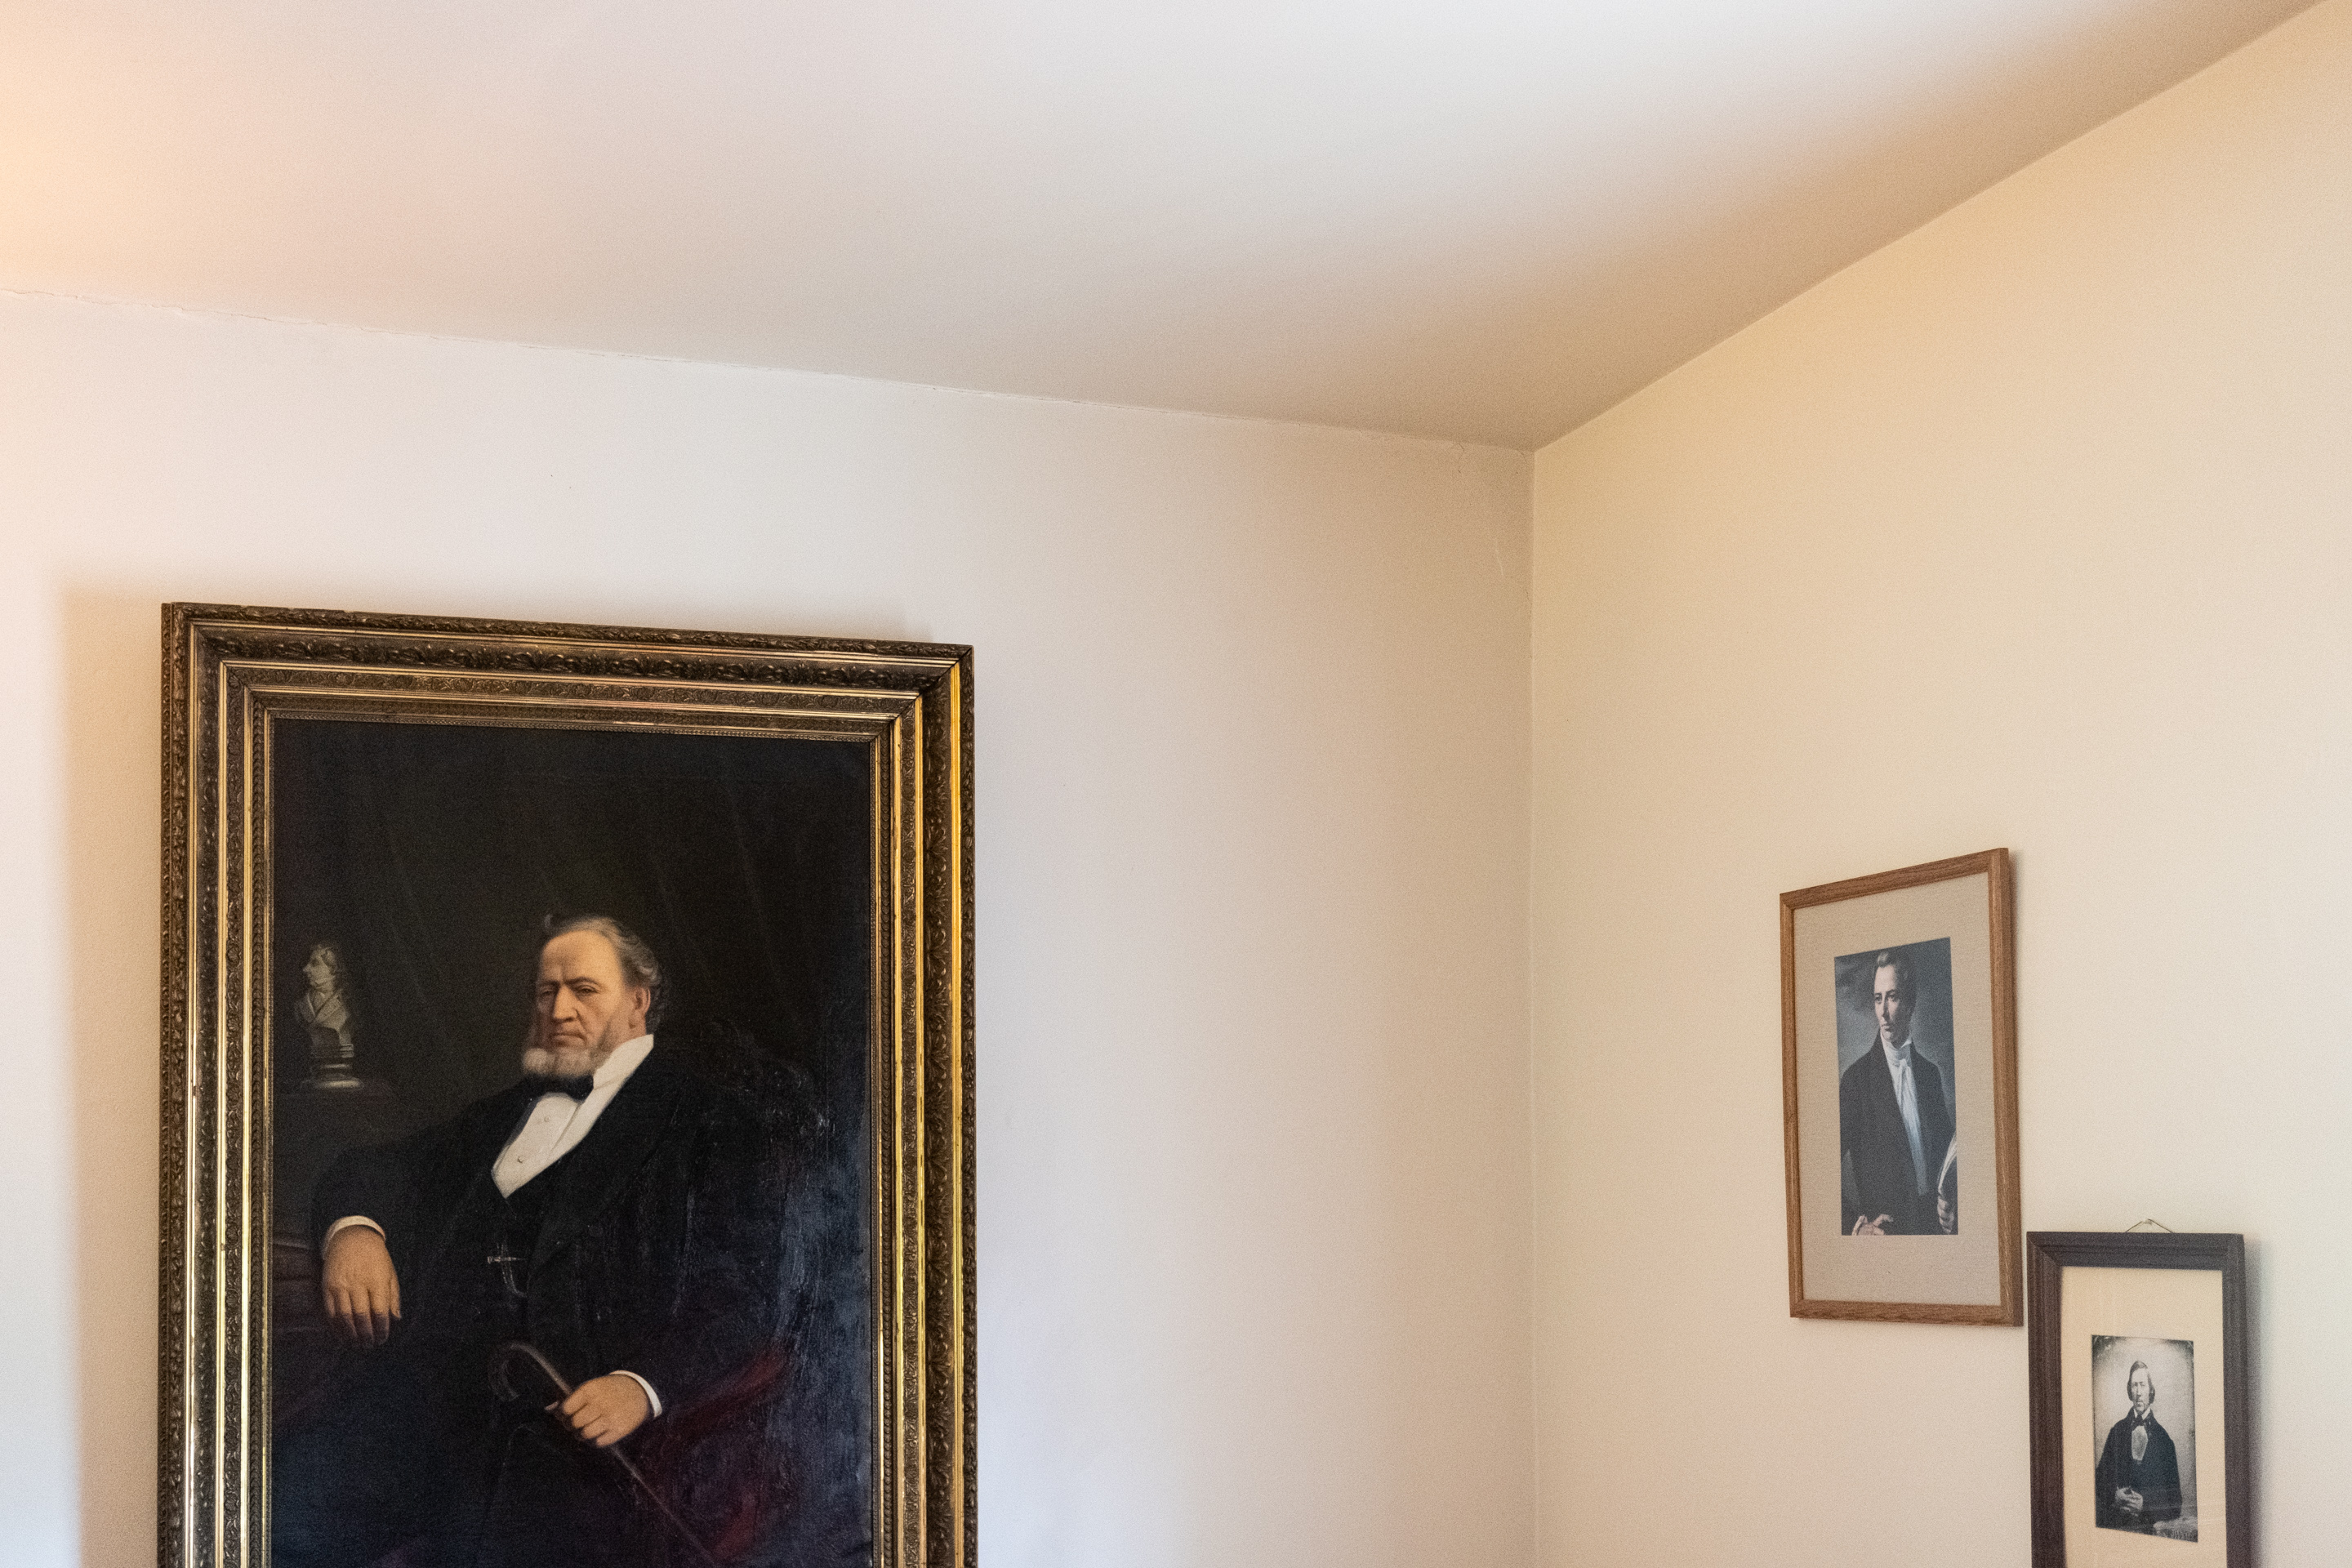 Original painting of Brigham Young hanging in his Historic Nauvoo home, Nauvoo, IL, 2019